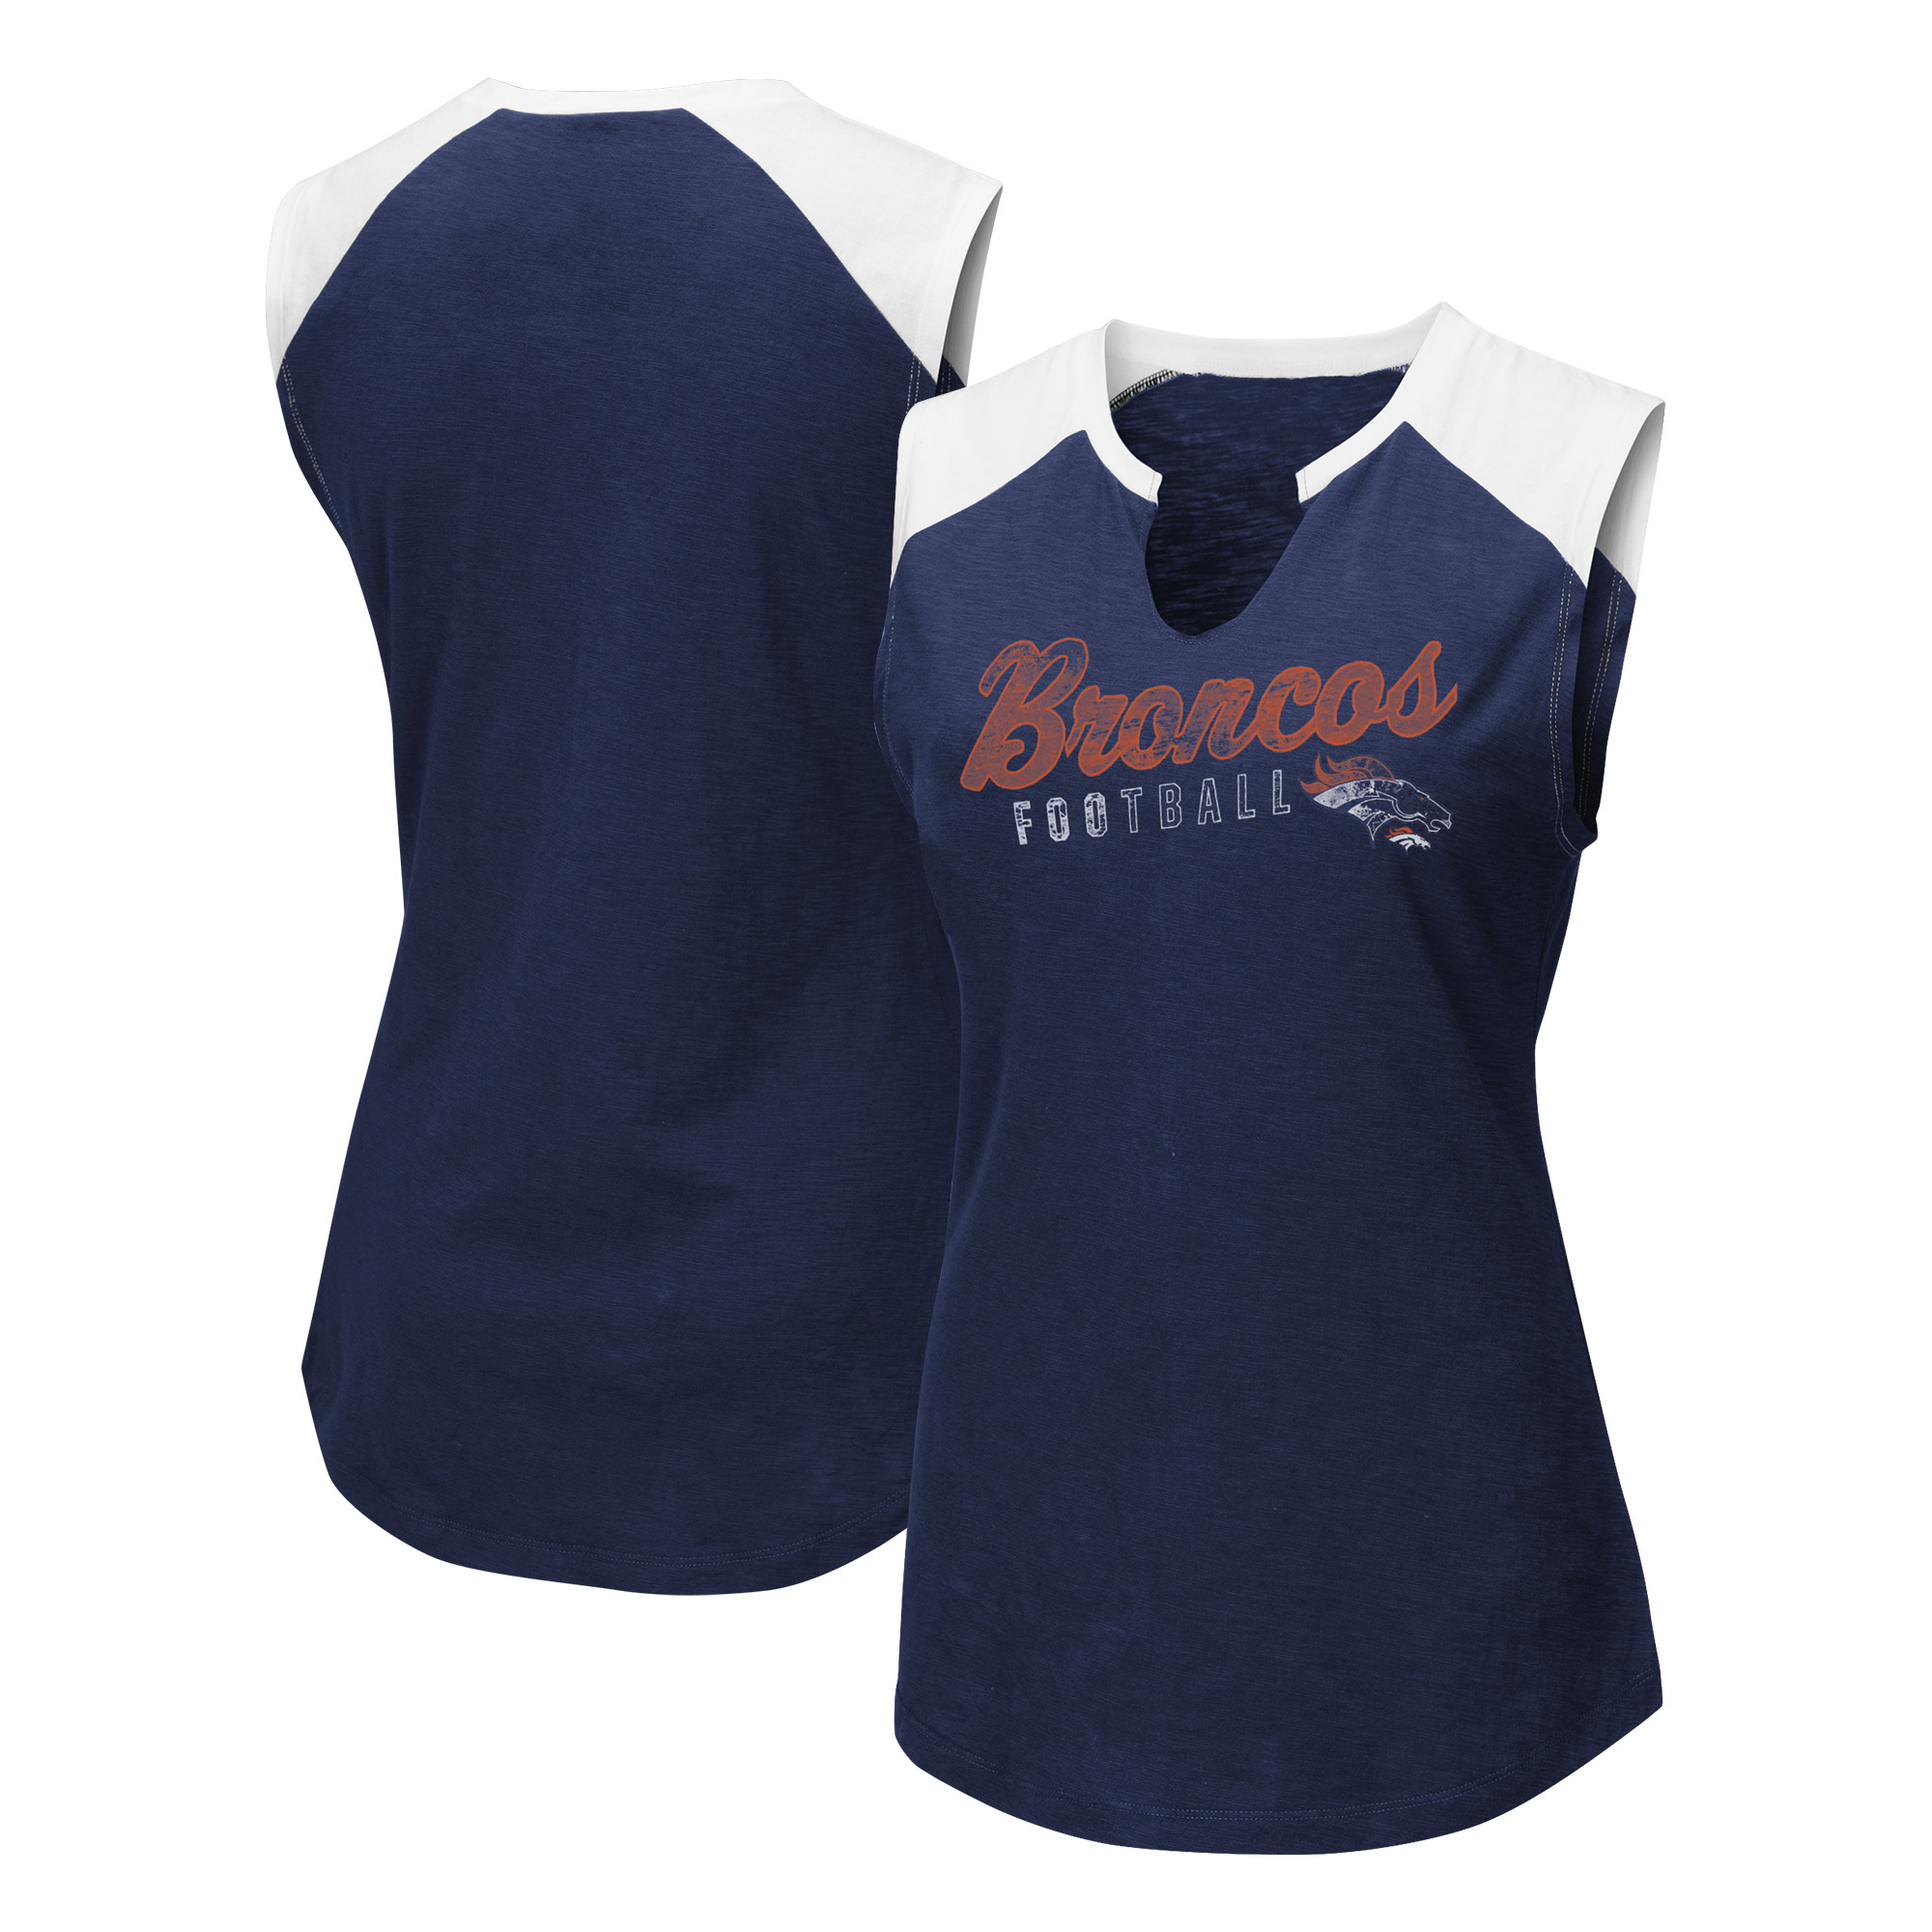 Denver Broncos Majestic Women's V-Notch Muscle Tank Top - Navy/White